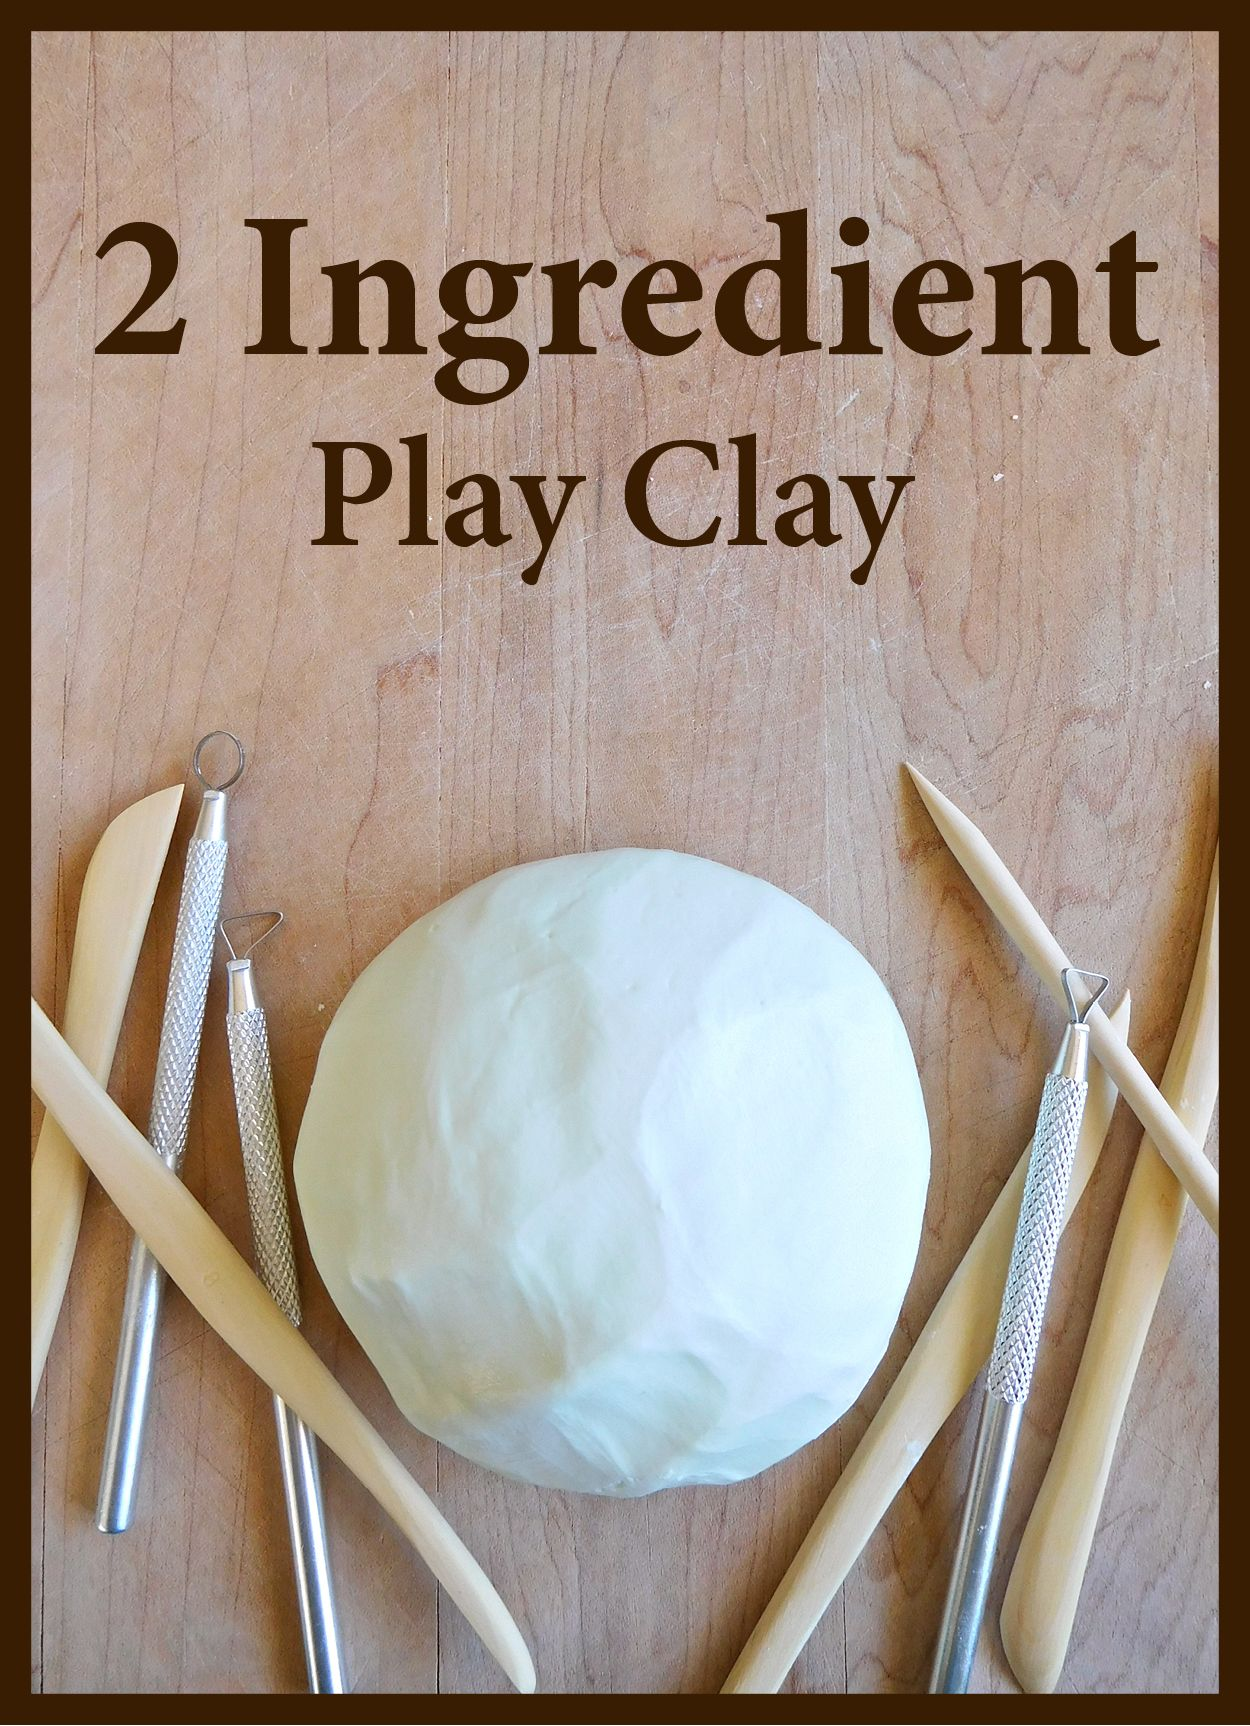 2 Ingredient Play Clay Play Clay Homemade Clay Clay